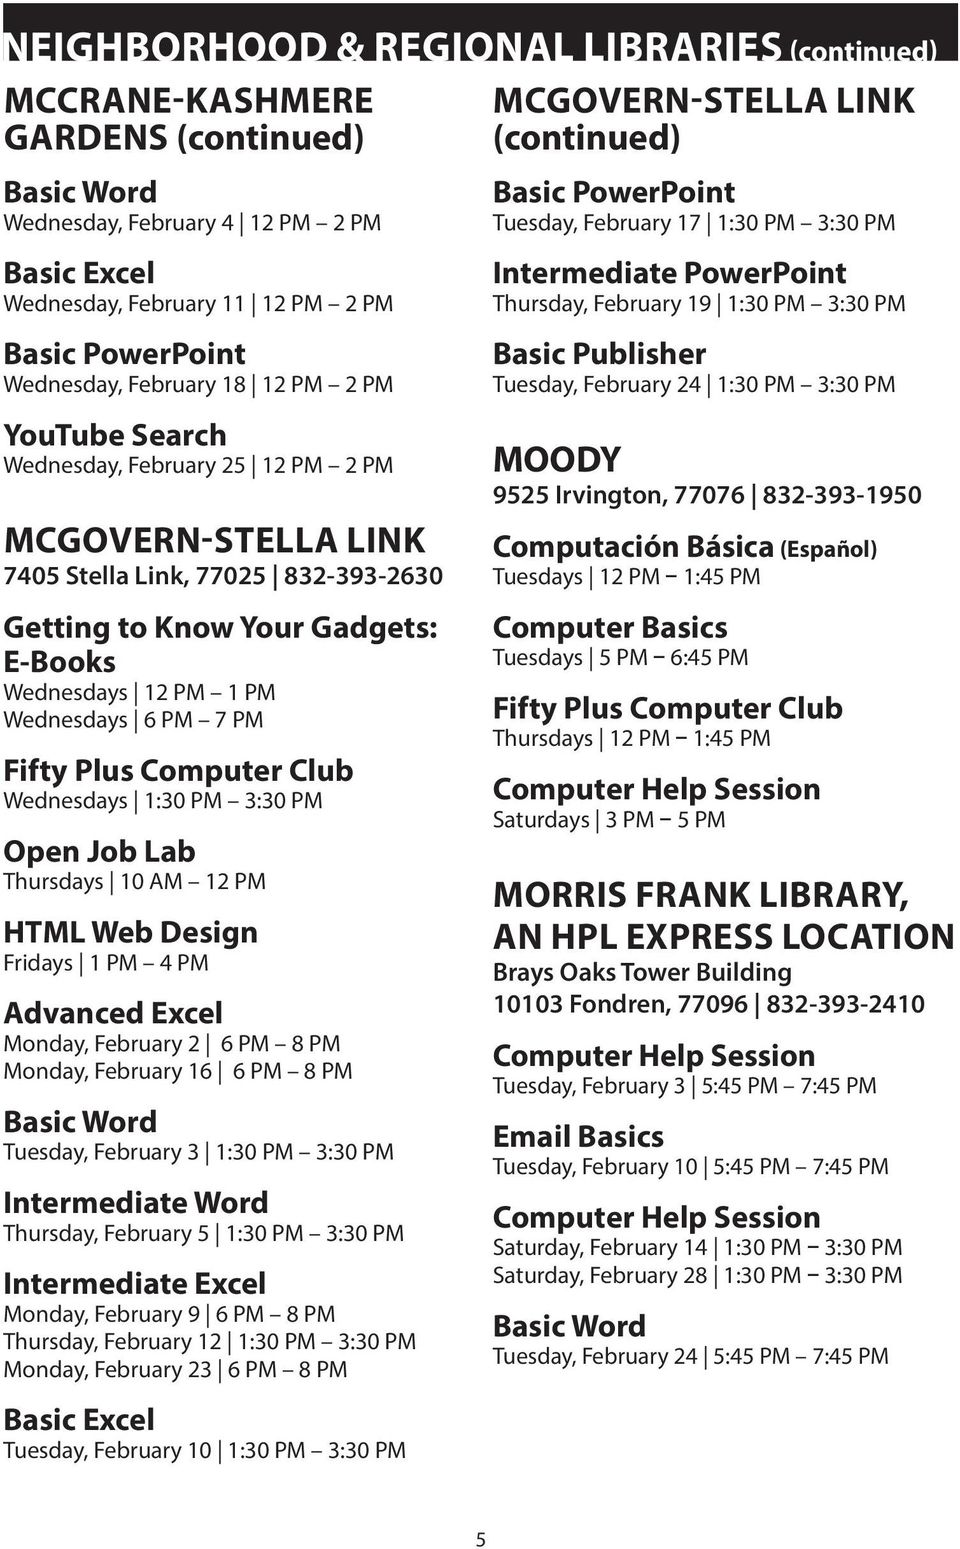 PM Wednesdays 6 PM 7 PM Fifty Plus Computer Club Wednesdays 1:30 PM 3:30 PM Thursdays 10 AM 12 PM HTML Web Design Fridays 1 PM 4 PM Advanced Excel Monday, February 2 6 PM 8 PM Monday, February 16 6